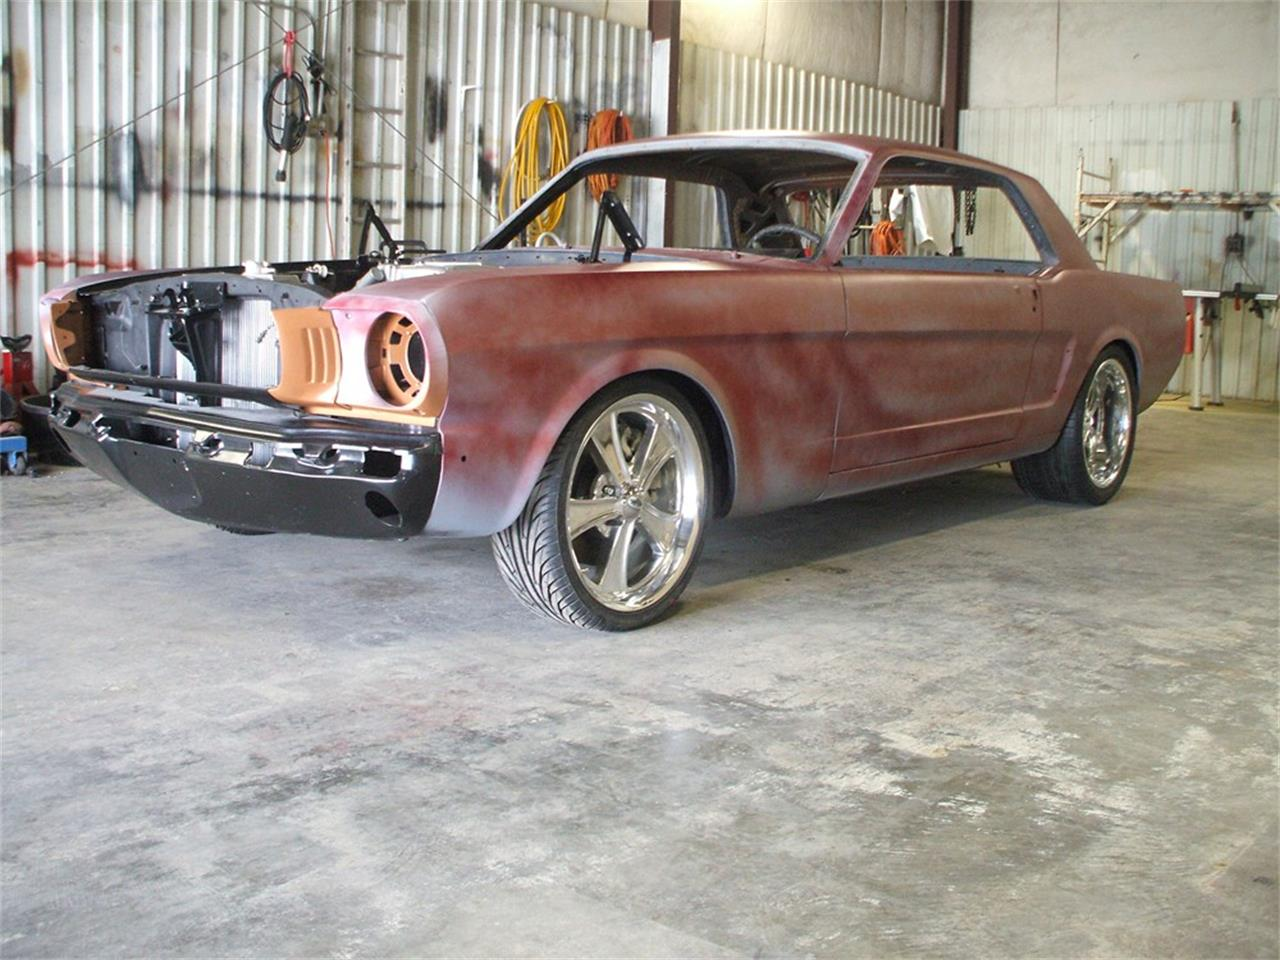 Large Picture of 1966 Mustang located in Holts Summit Missouri - $28,000.00 Offered by a Private Seller - N2TG